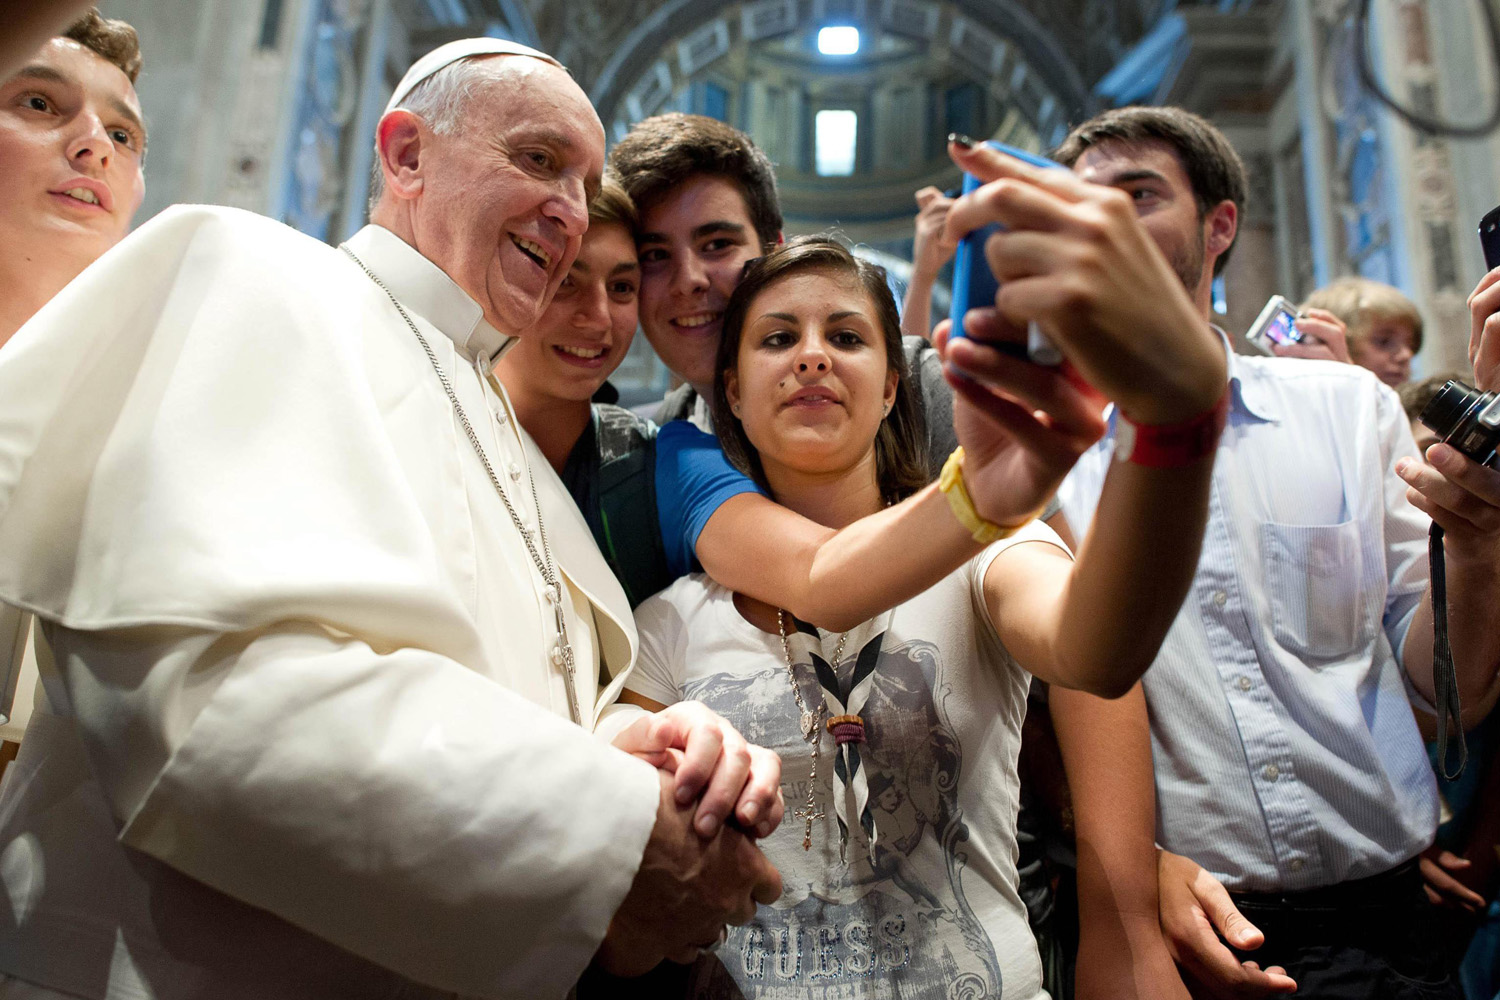 Posing with youths in Saint Peter's Basilica.